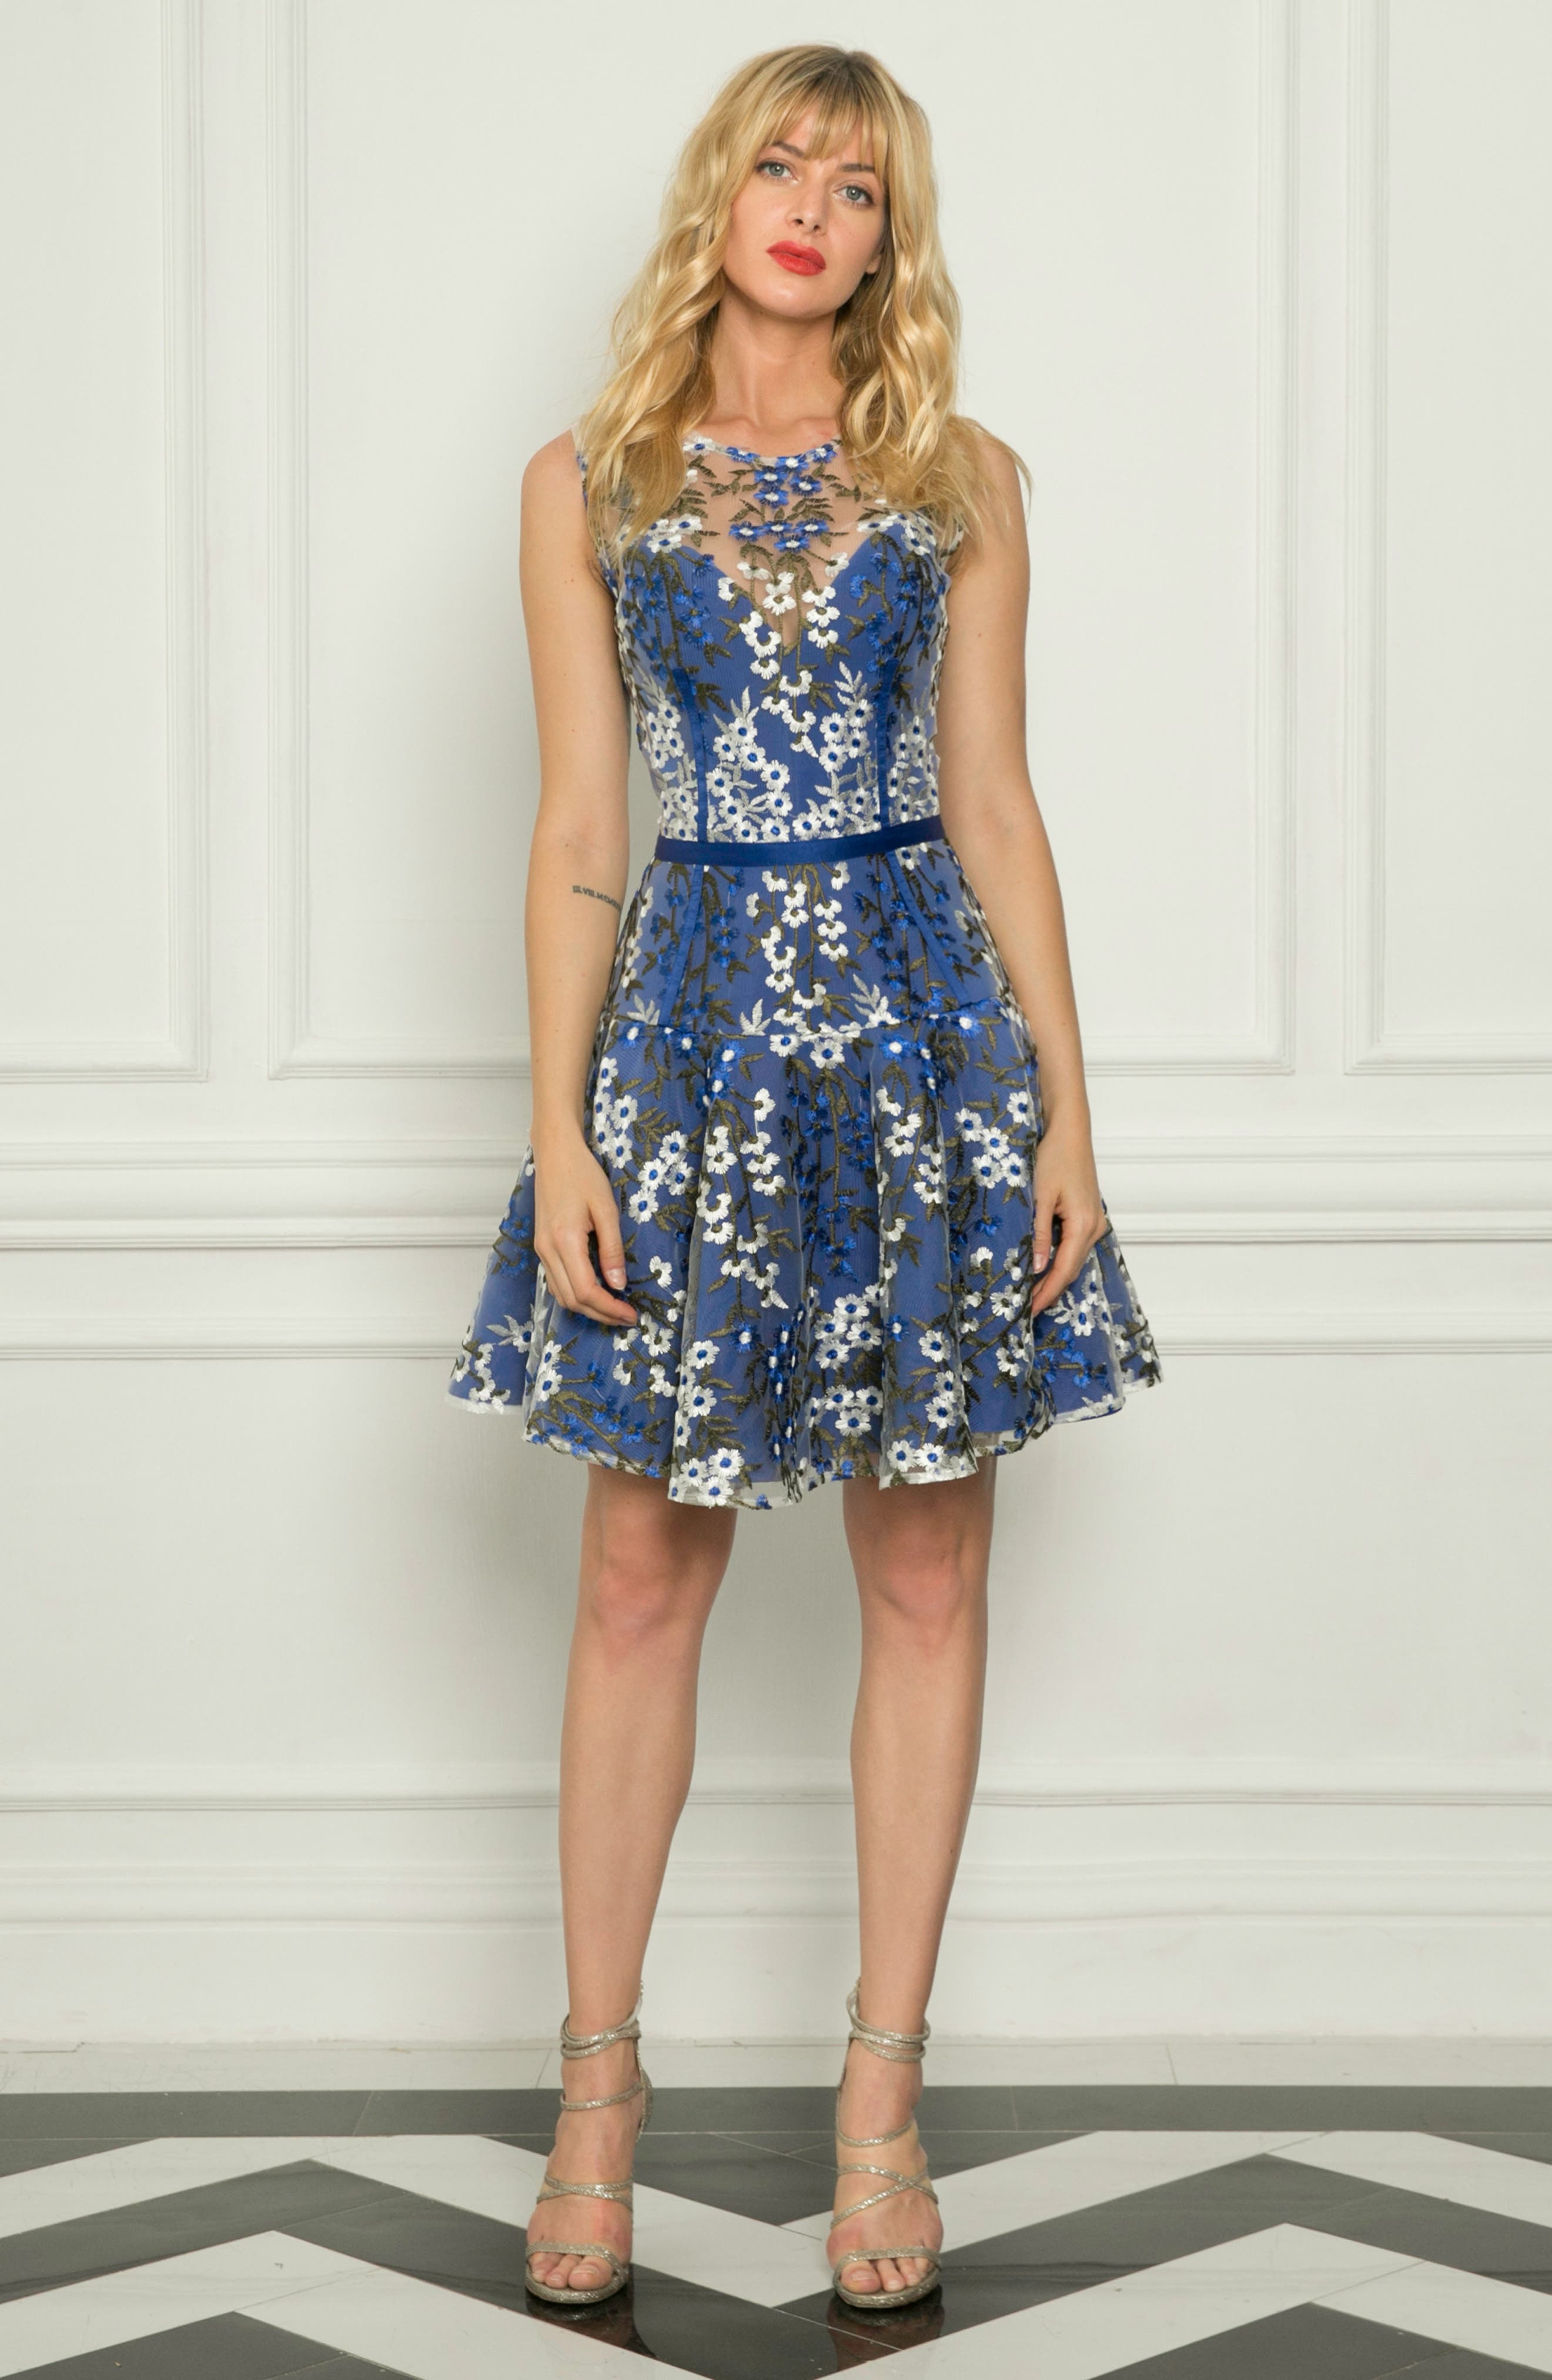 27d0f35fe696 Bronx And Banco All Women | Nordstrom